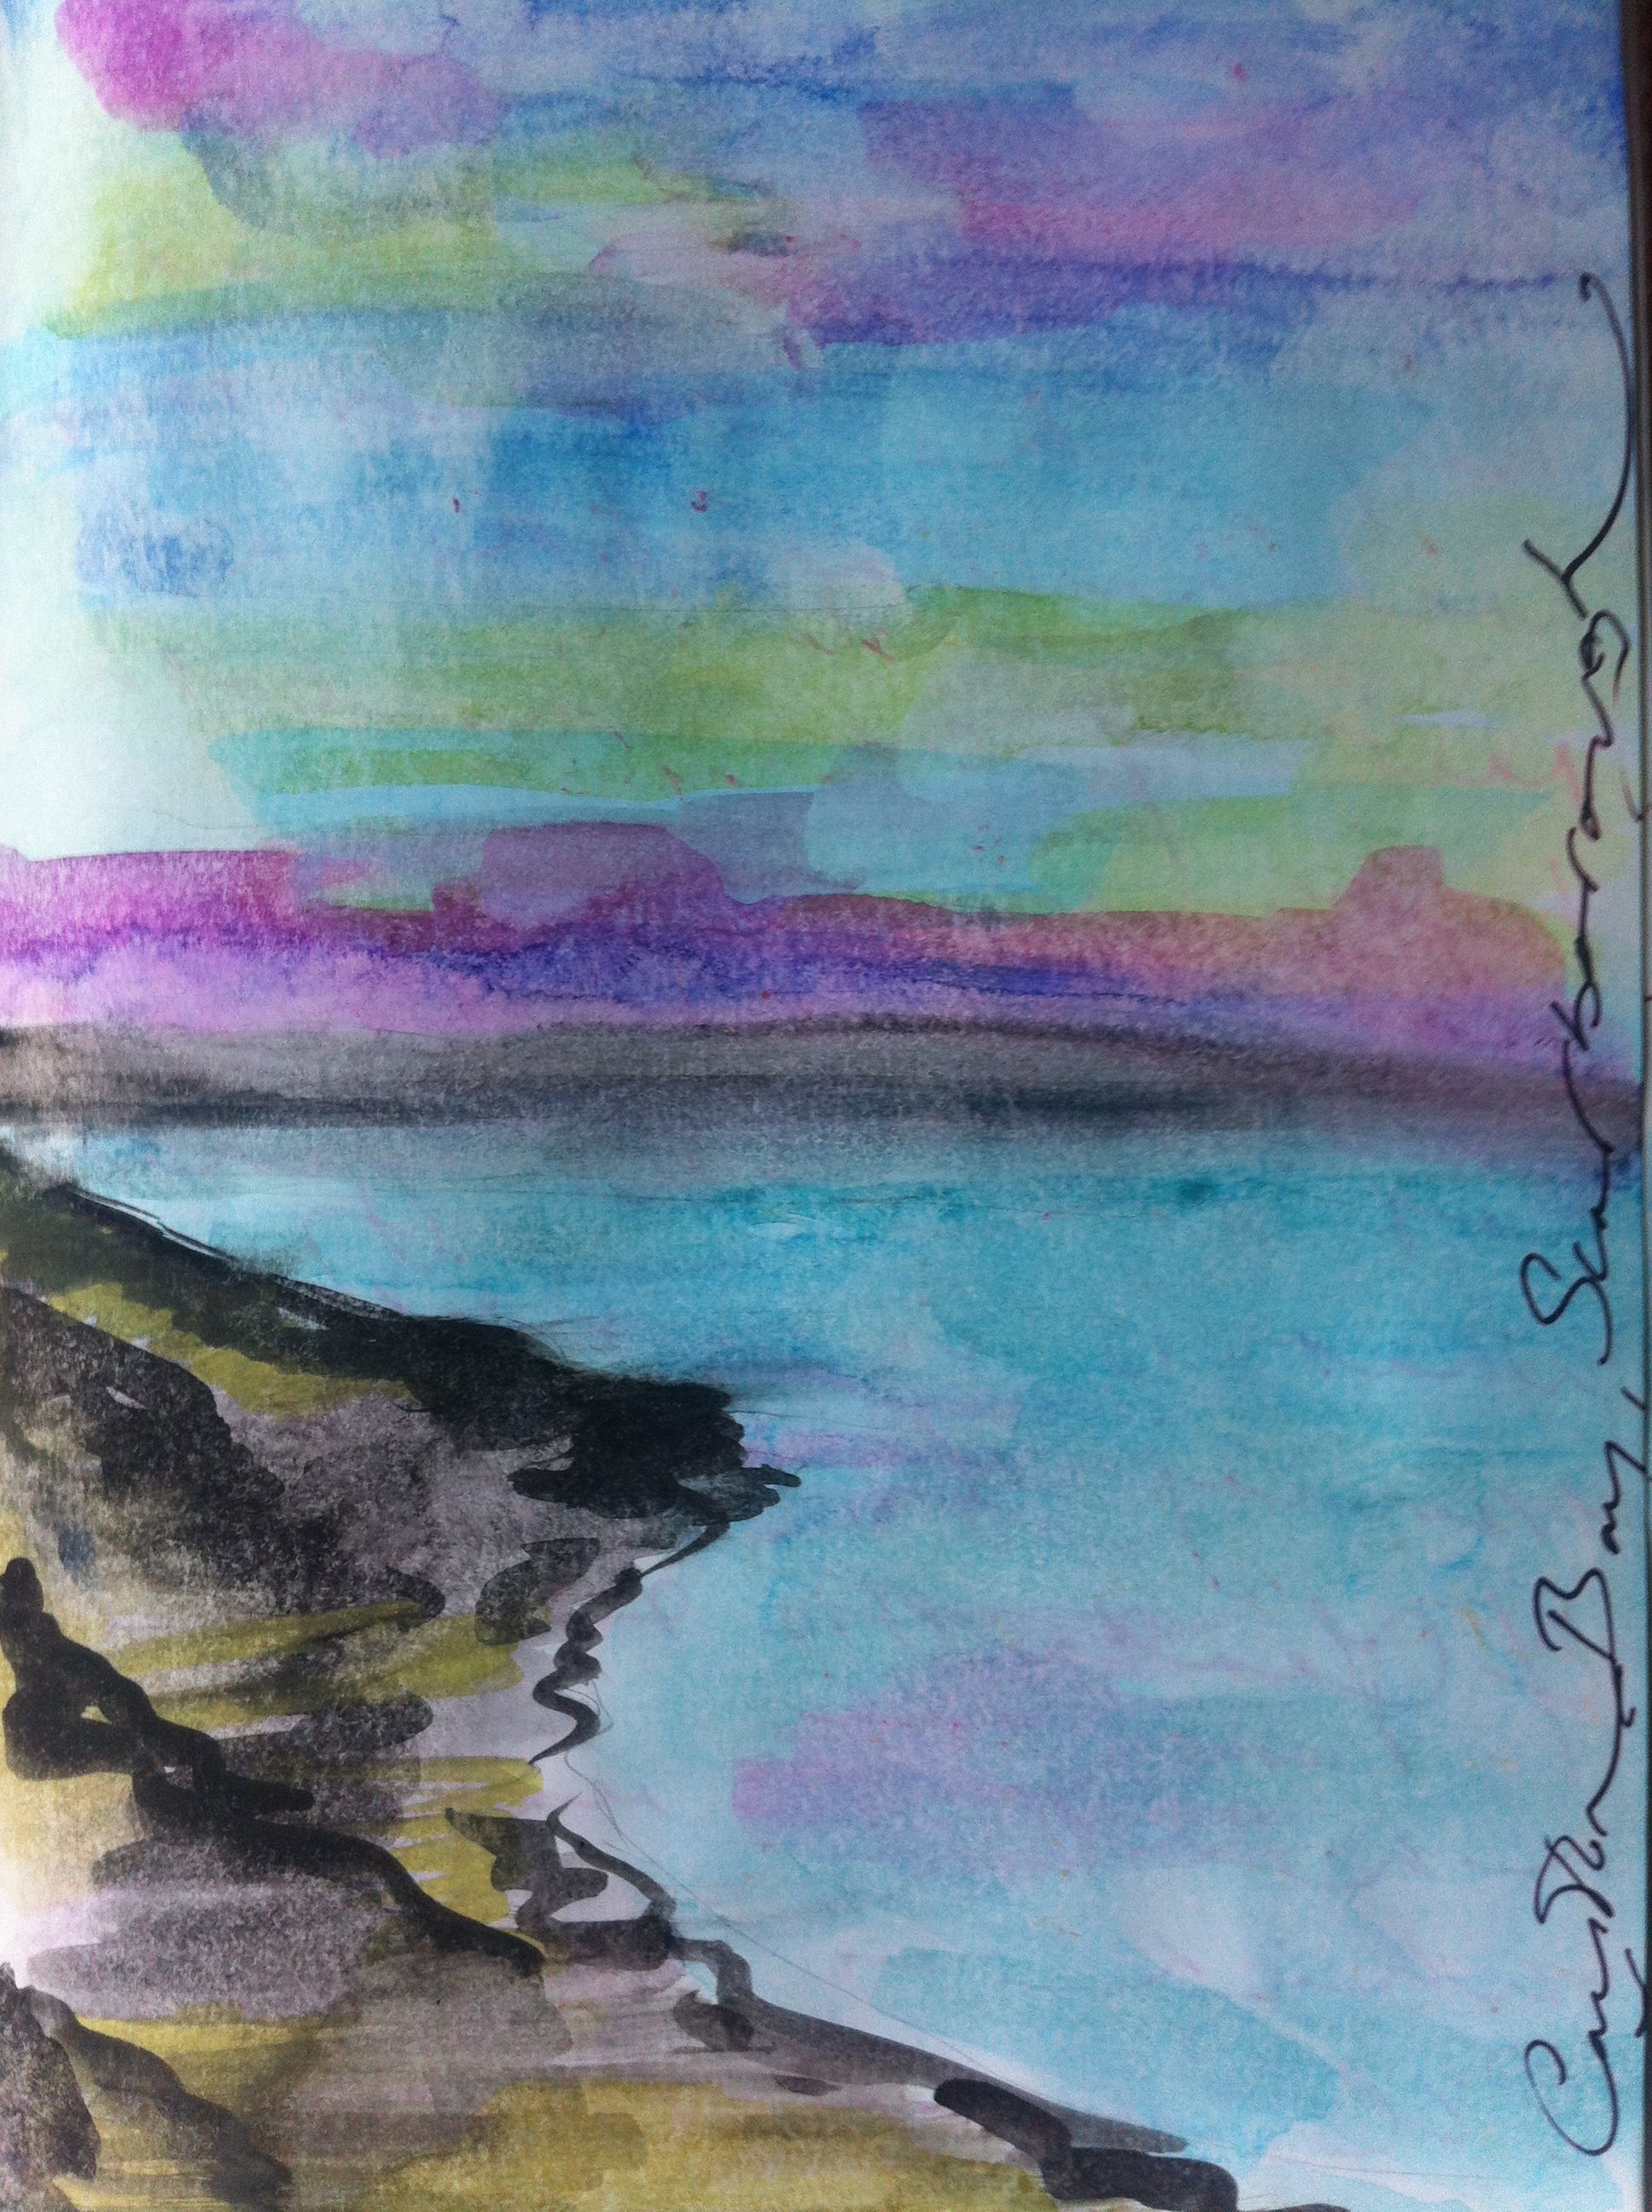 Watercolour sketch of Cayton Bay in Scarborough from my England Sketchbook